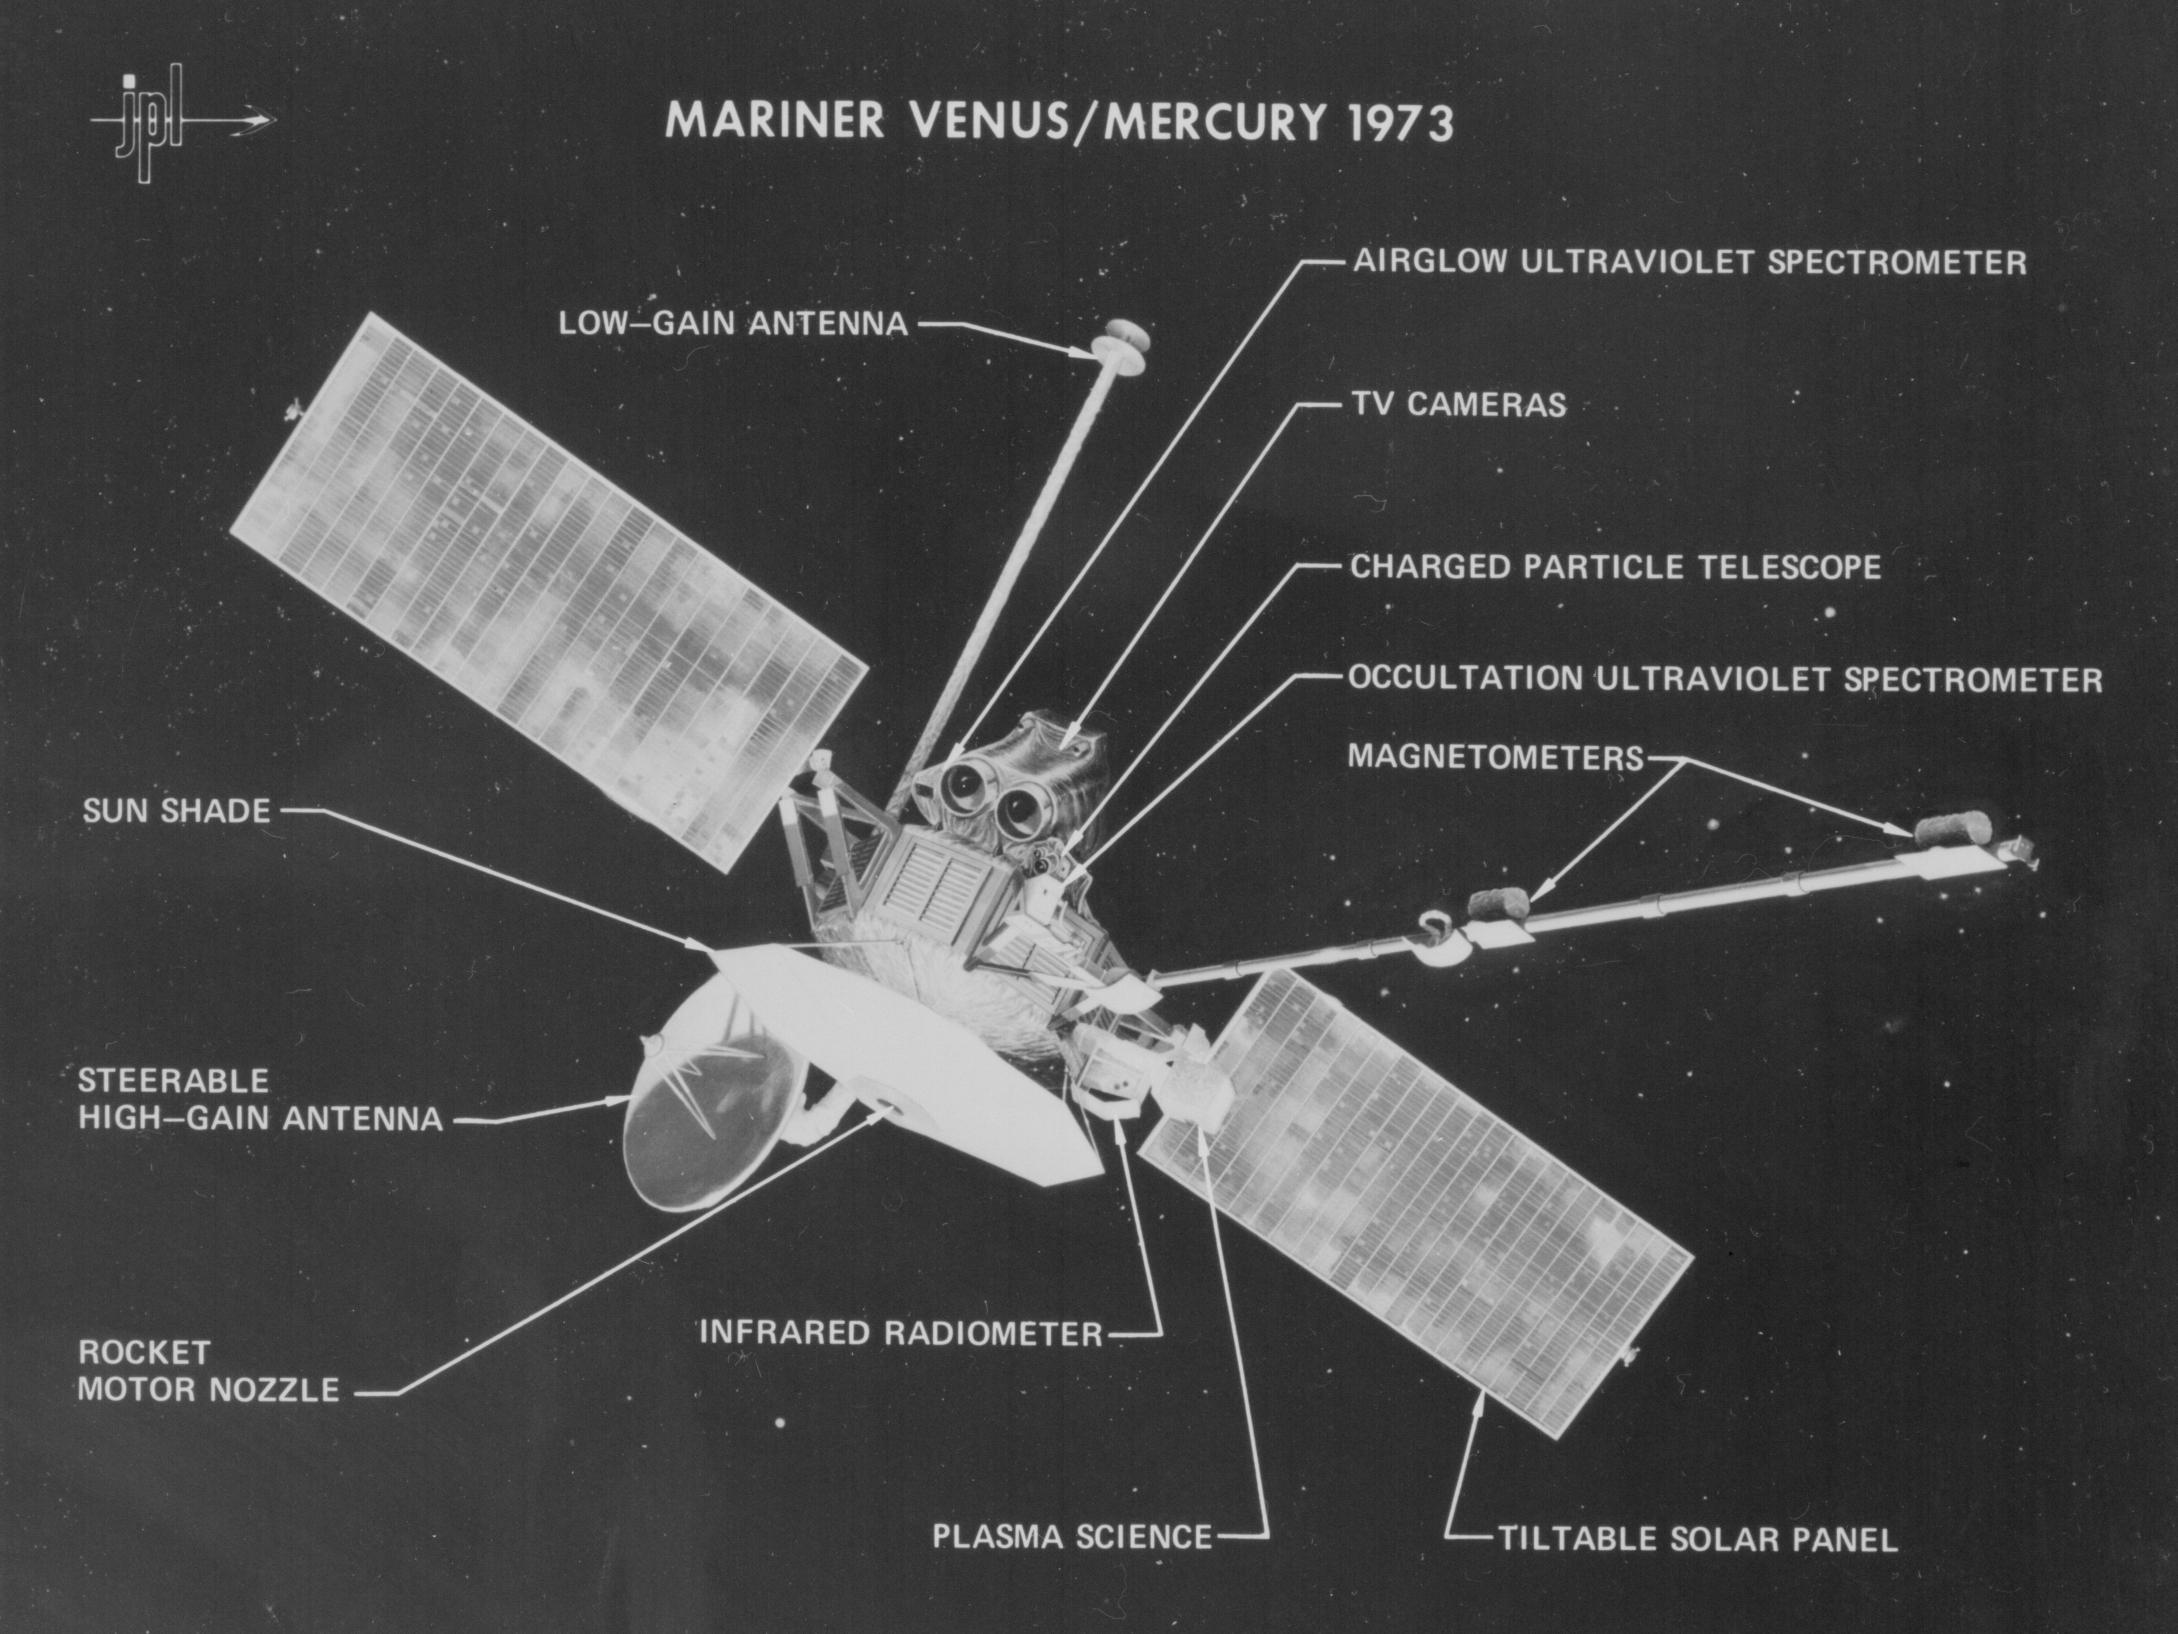 1978 mercury missions nasa - photo #39